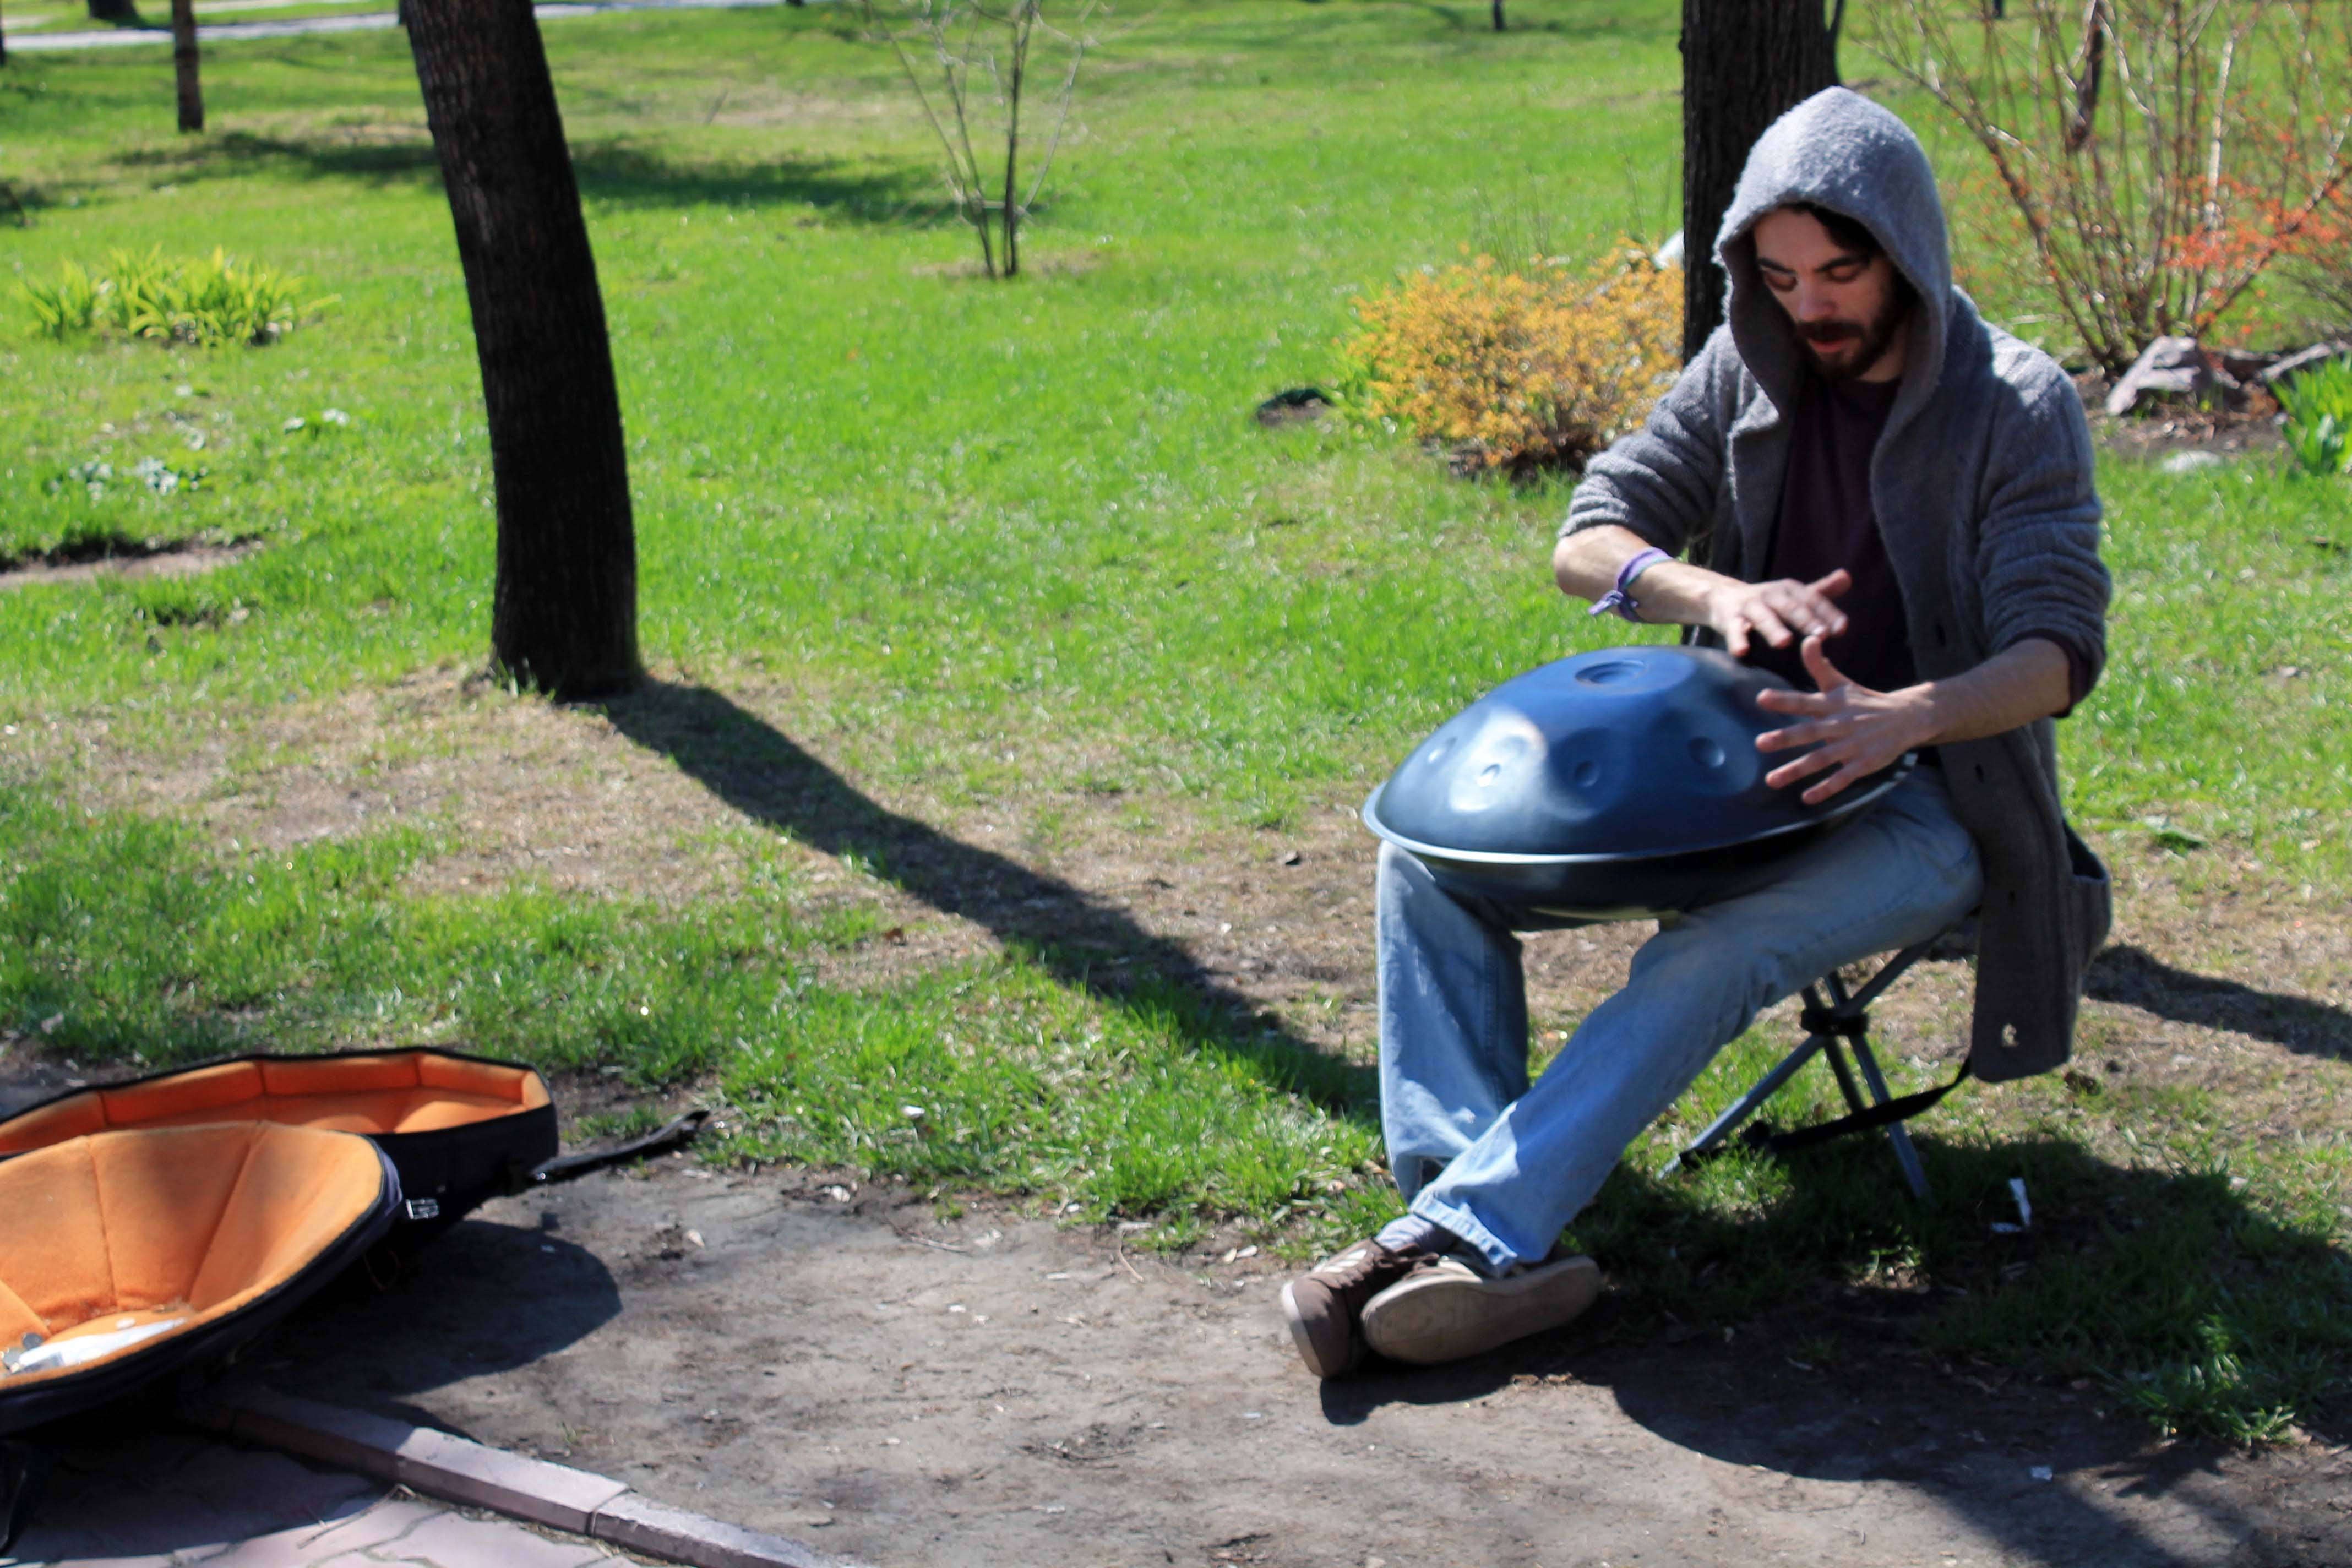 Street_Musician_Playing_Handpan_in_Novosibirsk,